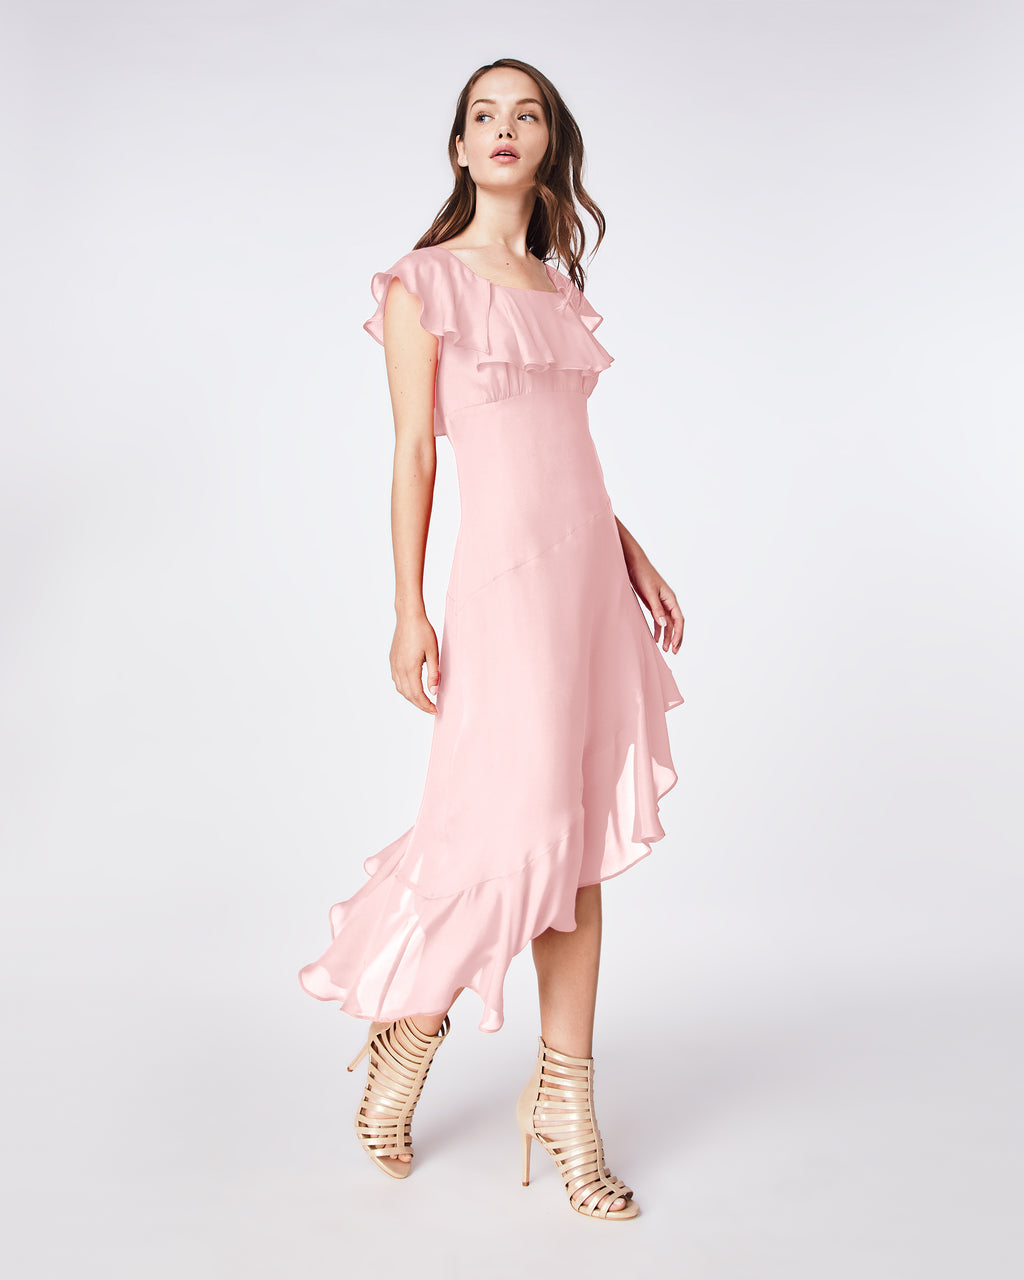 BQ10328 - SOLID SILK BLEND FLUTTER SLEEVE DRESS - dresses - midi - This effortless midi dress offers a fresh update to classic style. In a silk blend, this feminine style features ruffles and a flattering fitted bodice. Pack it for a holiday getaway or layer a sweater over it.